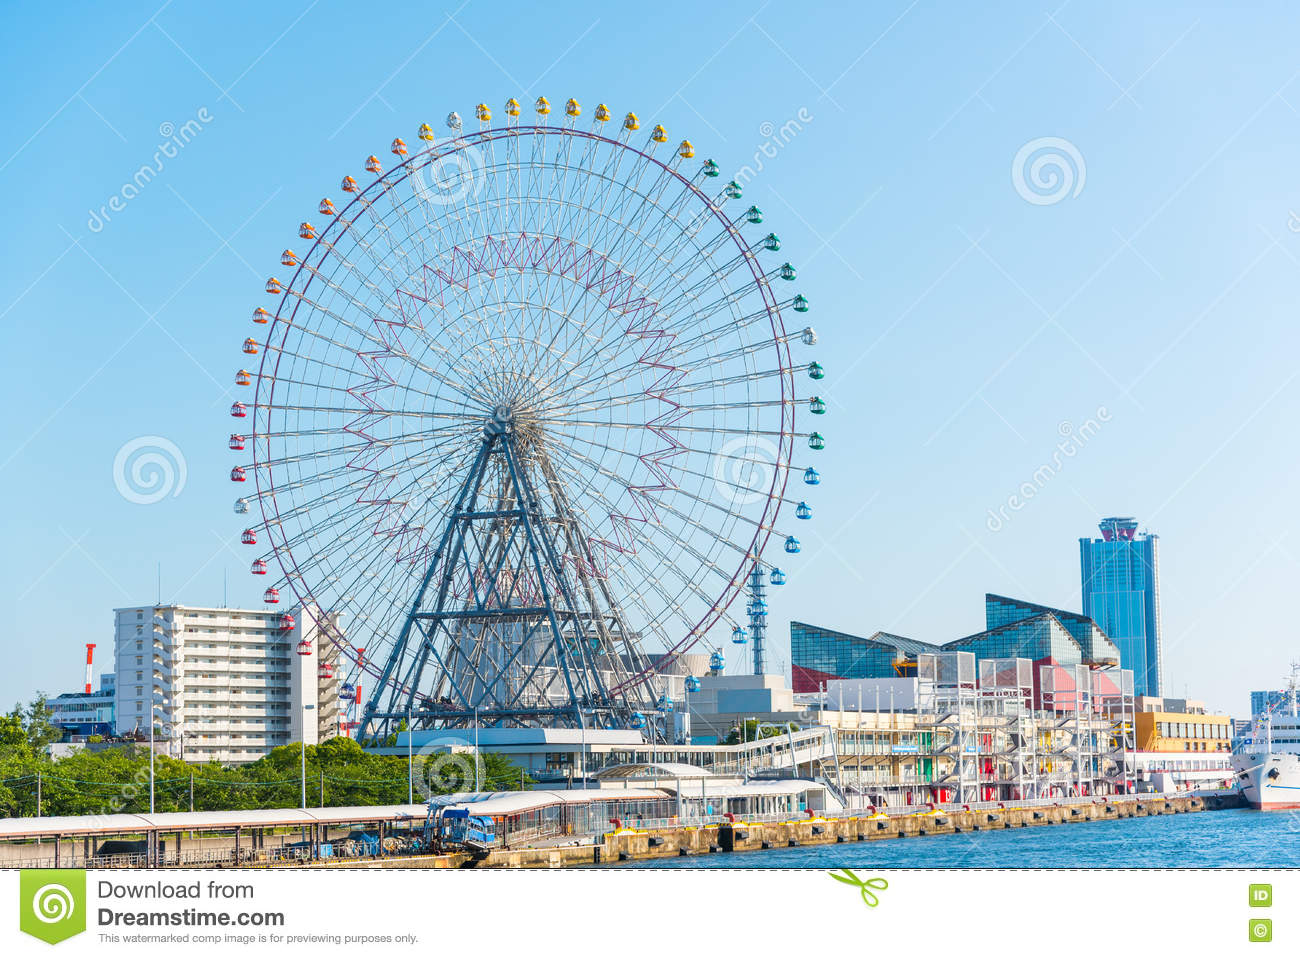 Tempozan Ferris wheel and Osaka Aquarium